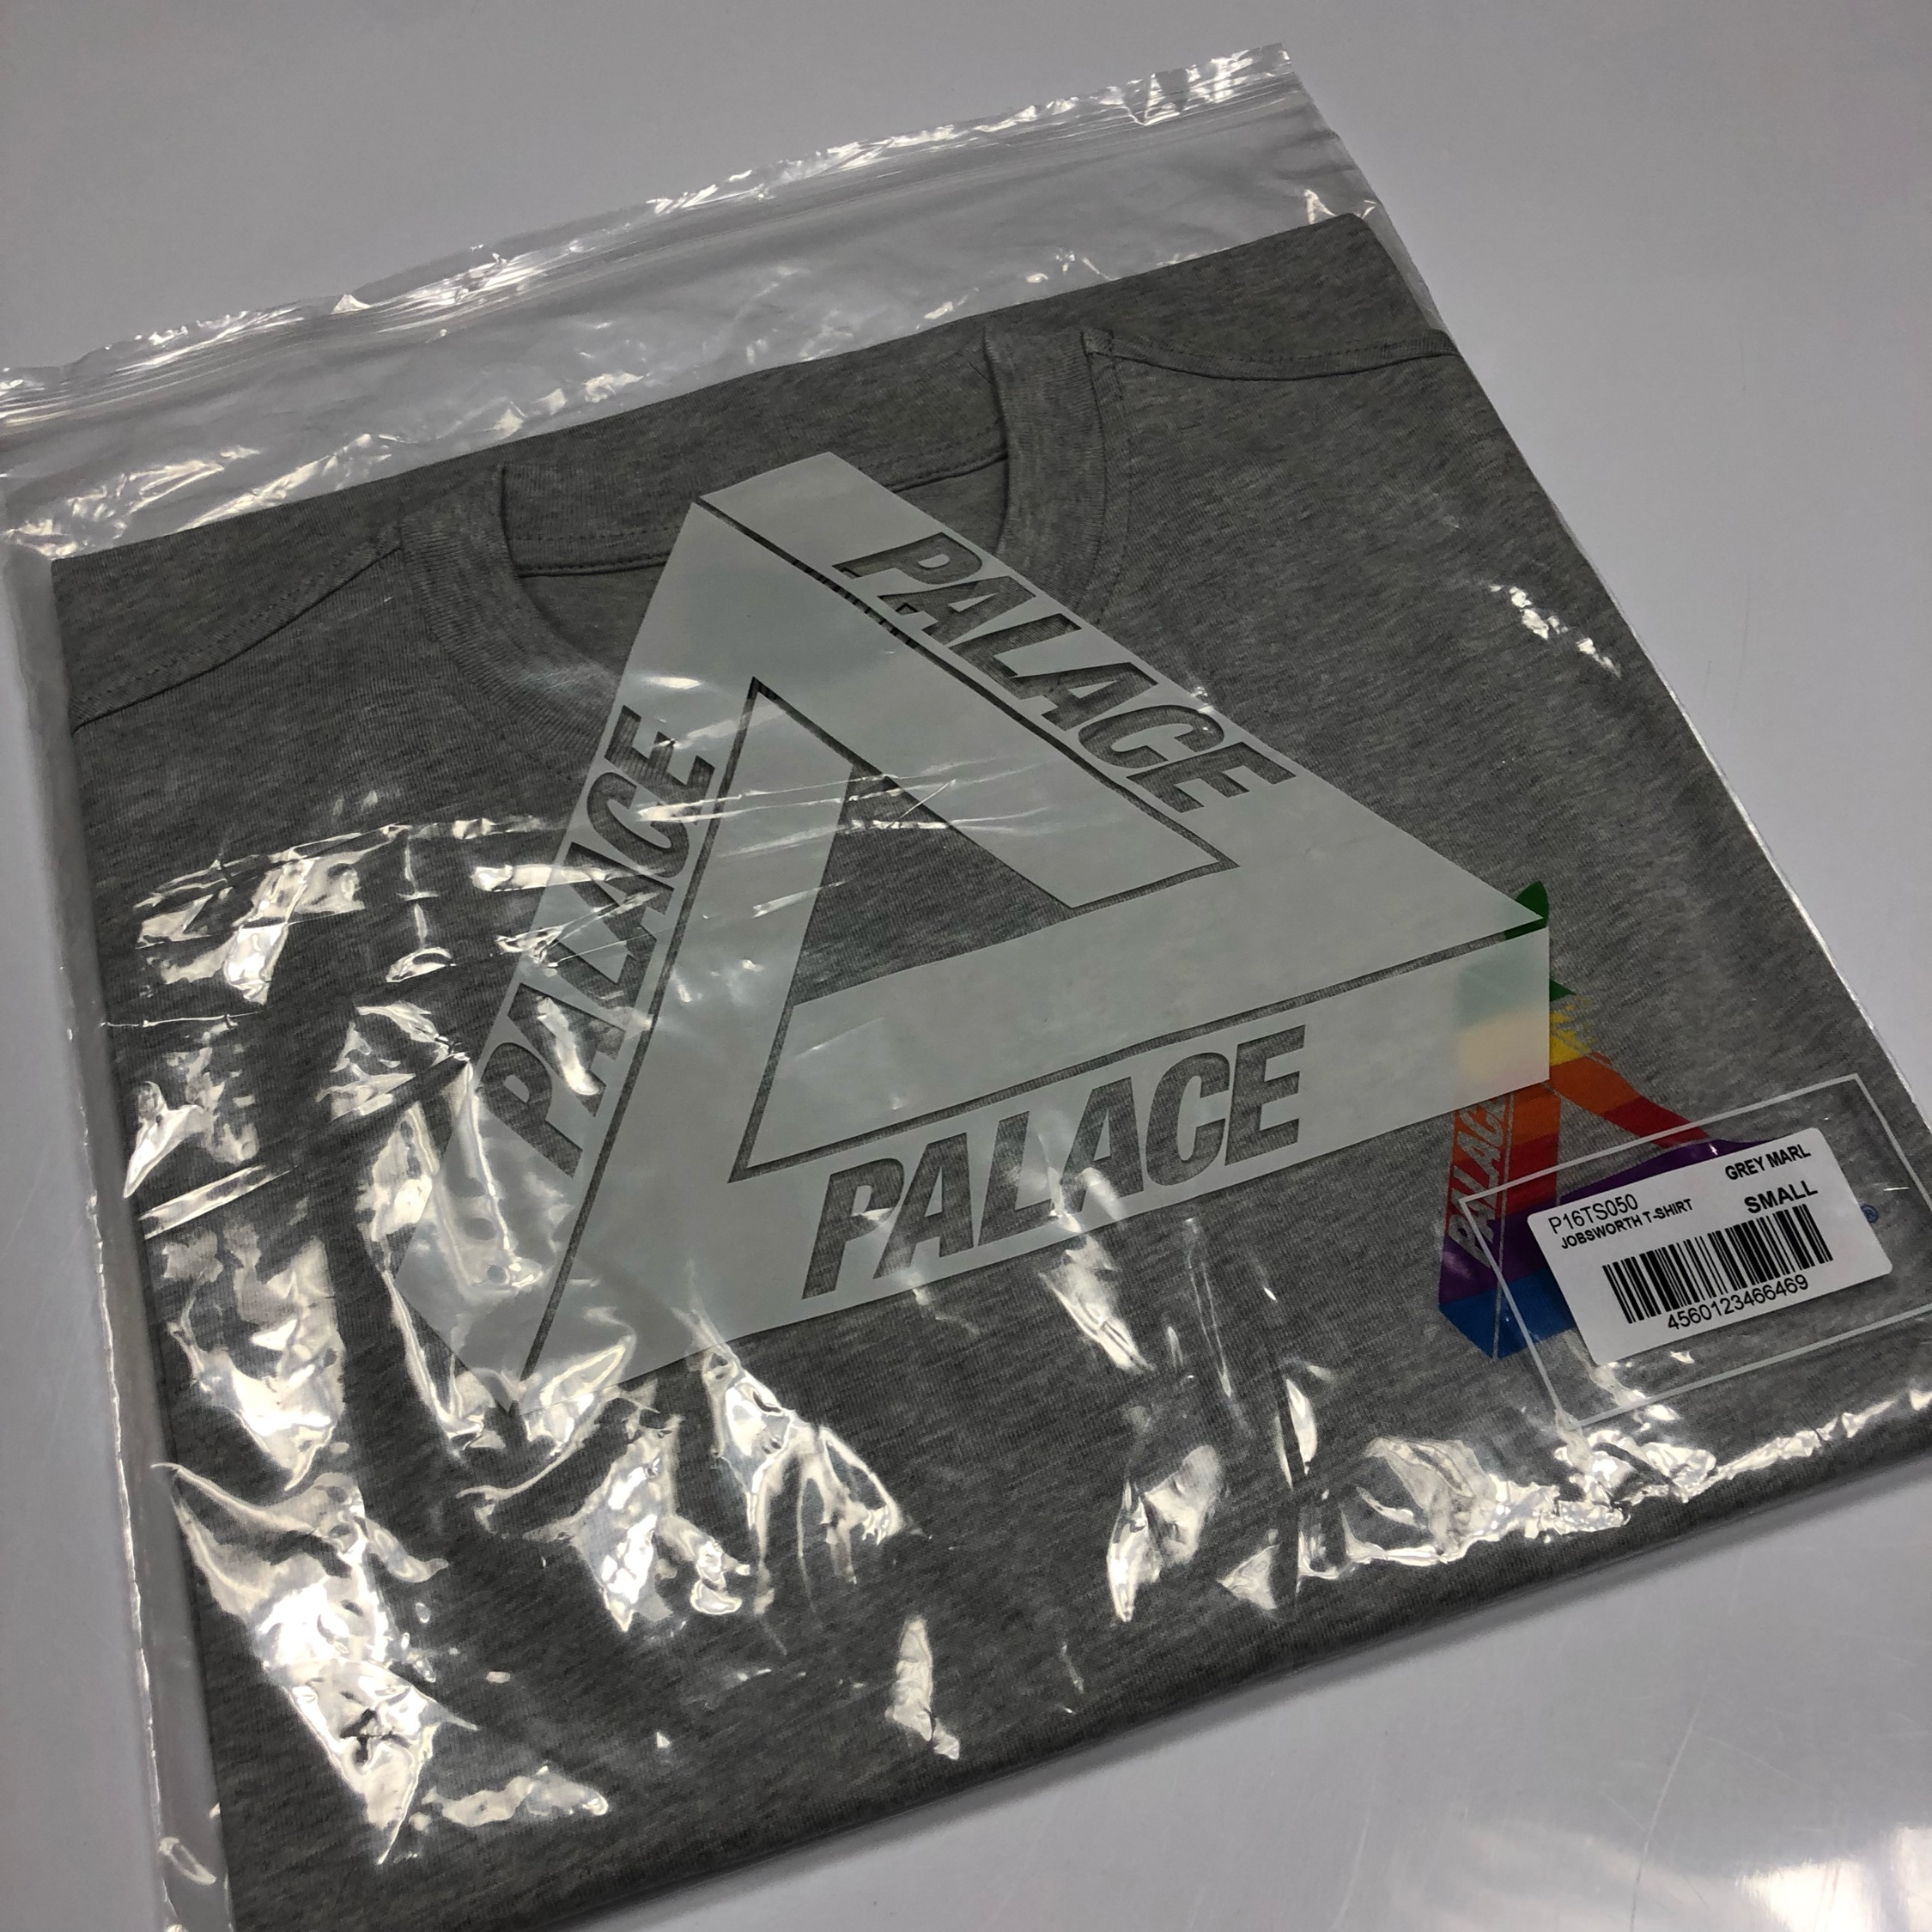 Palace Jobsworth Tri Ferg T Shirt